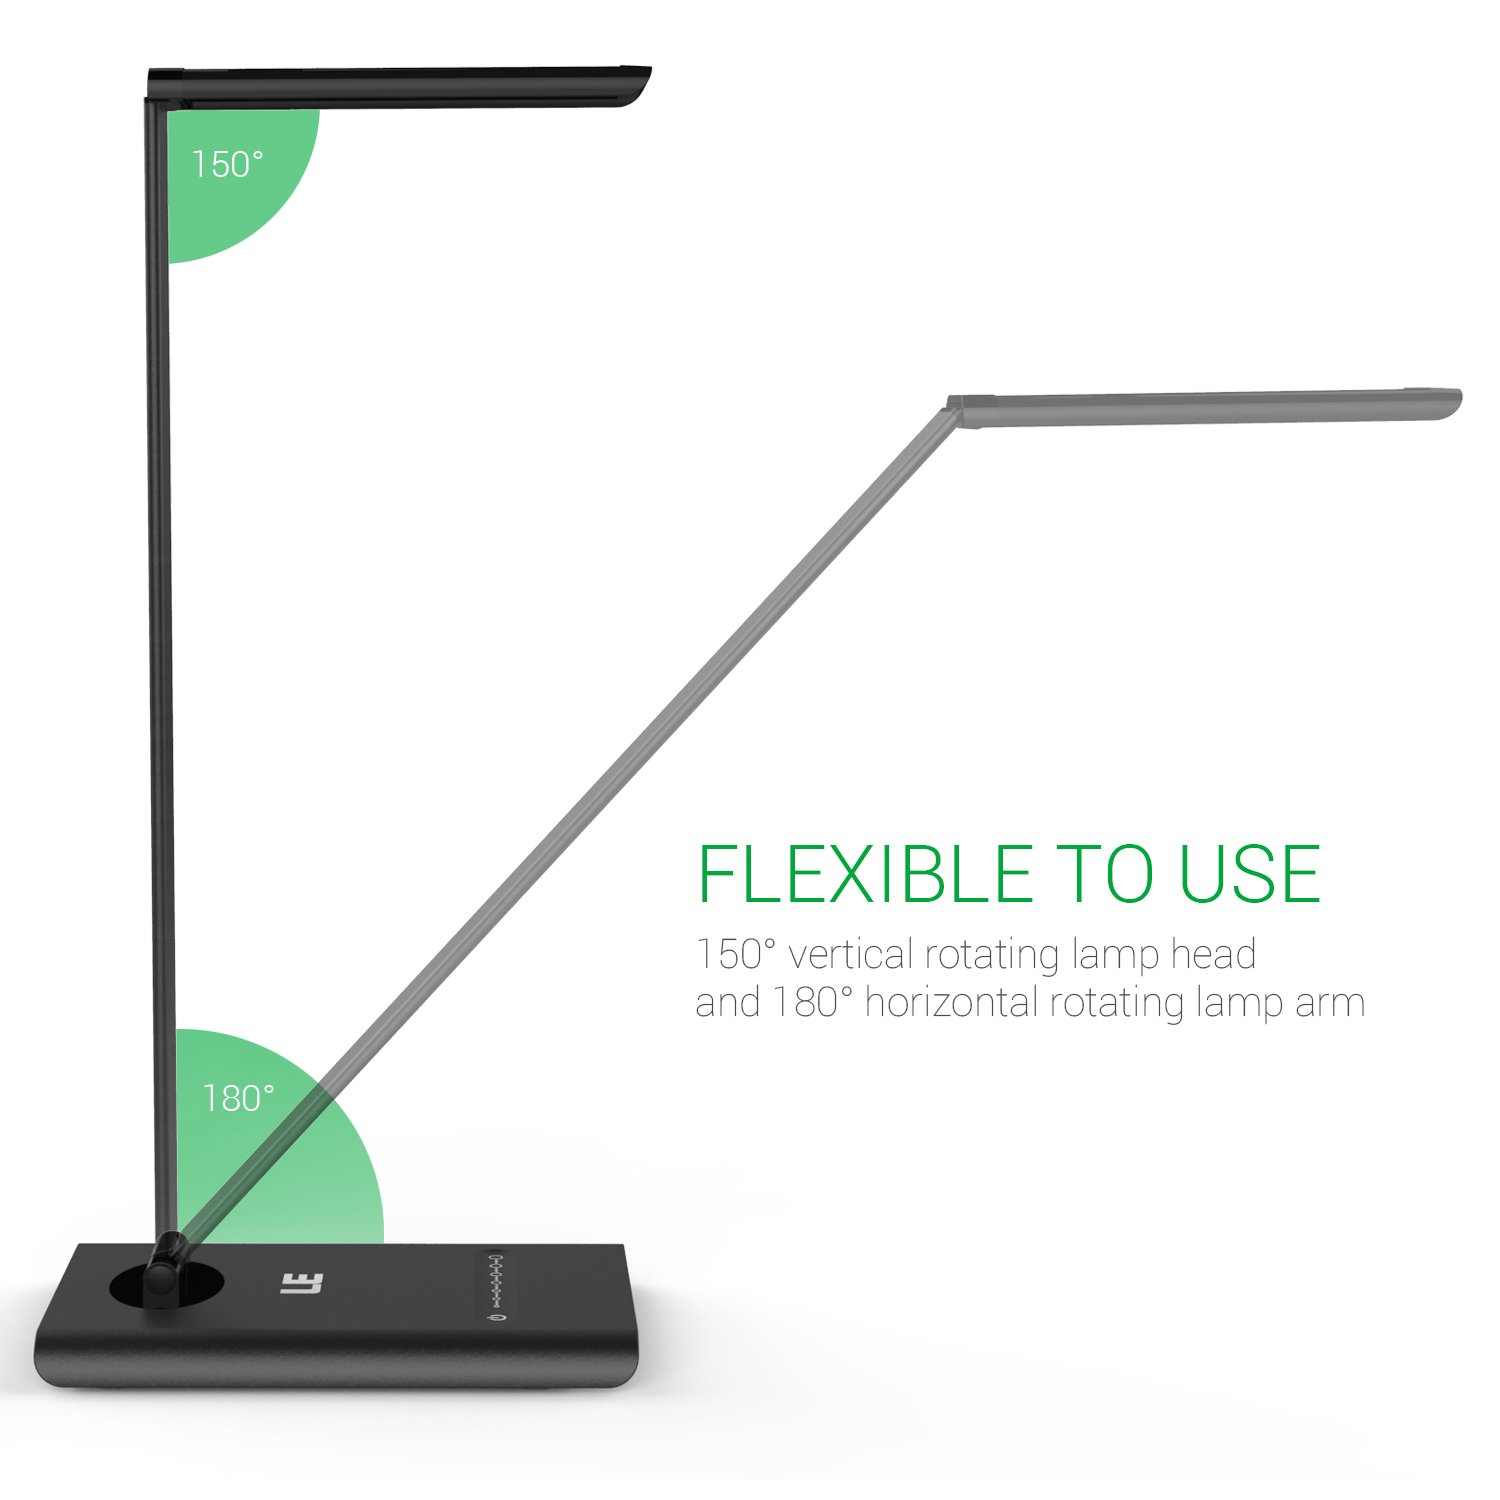 Le dimmable led desk lamp 7 brightness levels eye protection le dimmable led desk lamp 7 brightness levels eye protection design reading lamp touch sensitive control 6w folding table lamp daylight white geotapseo Choice Image